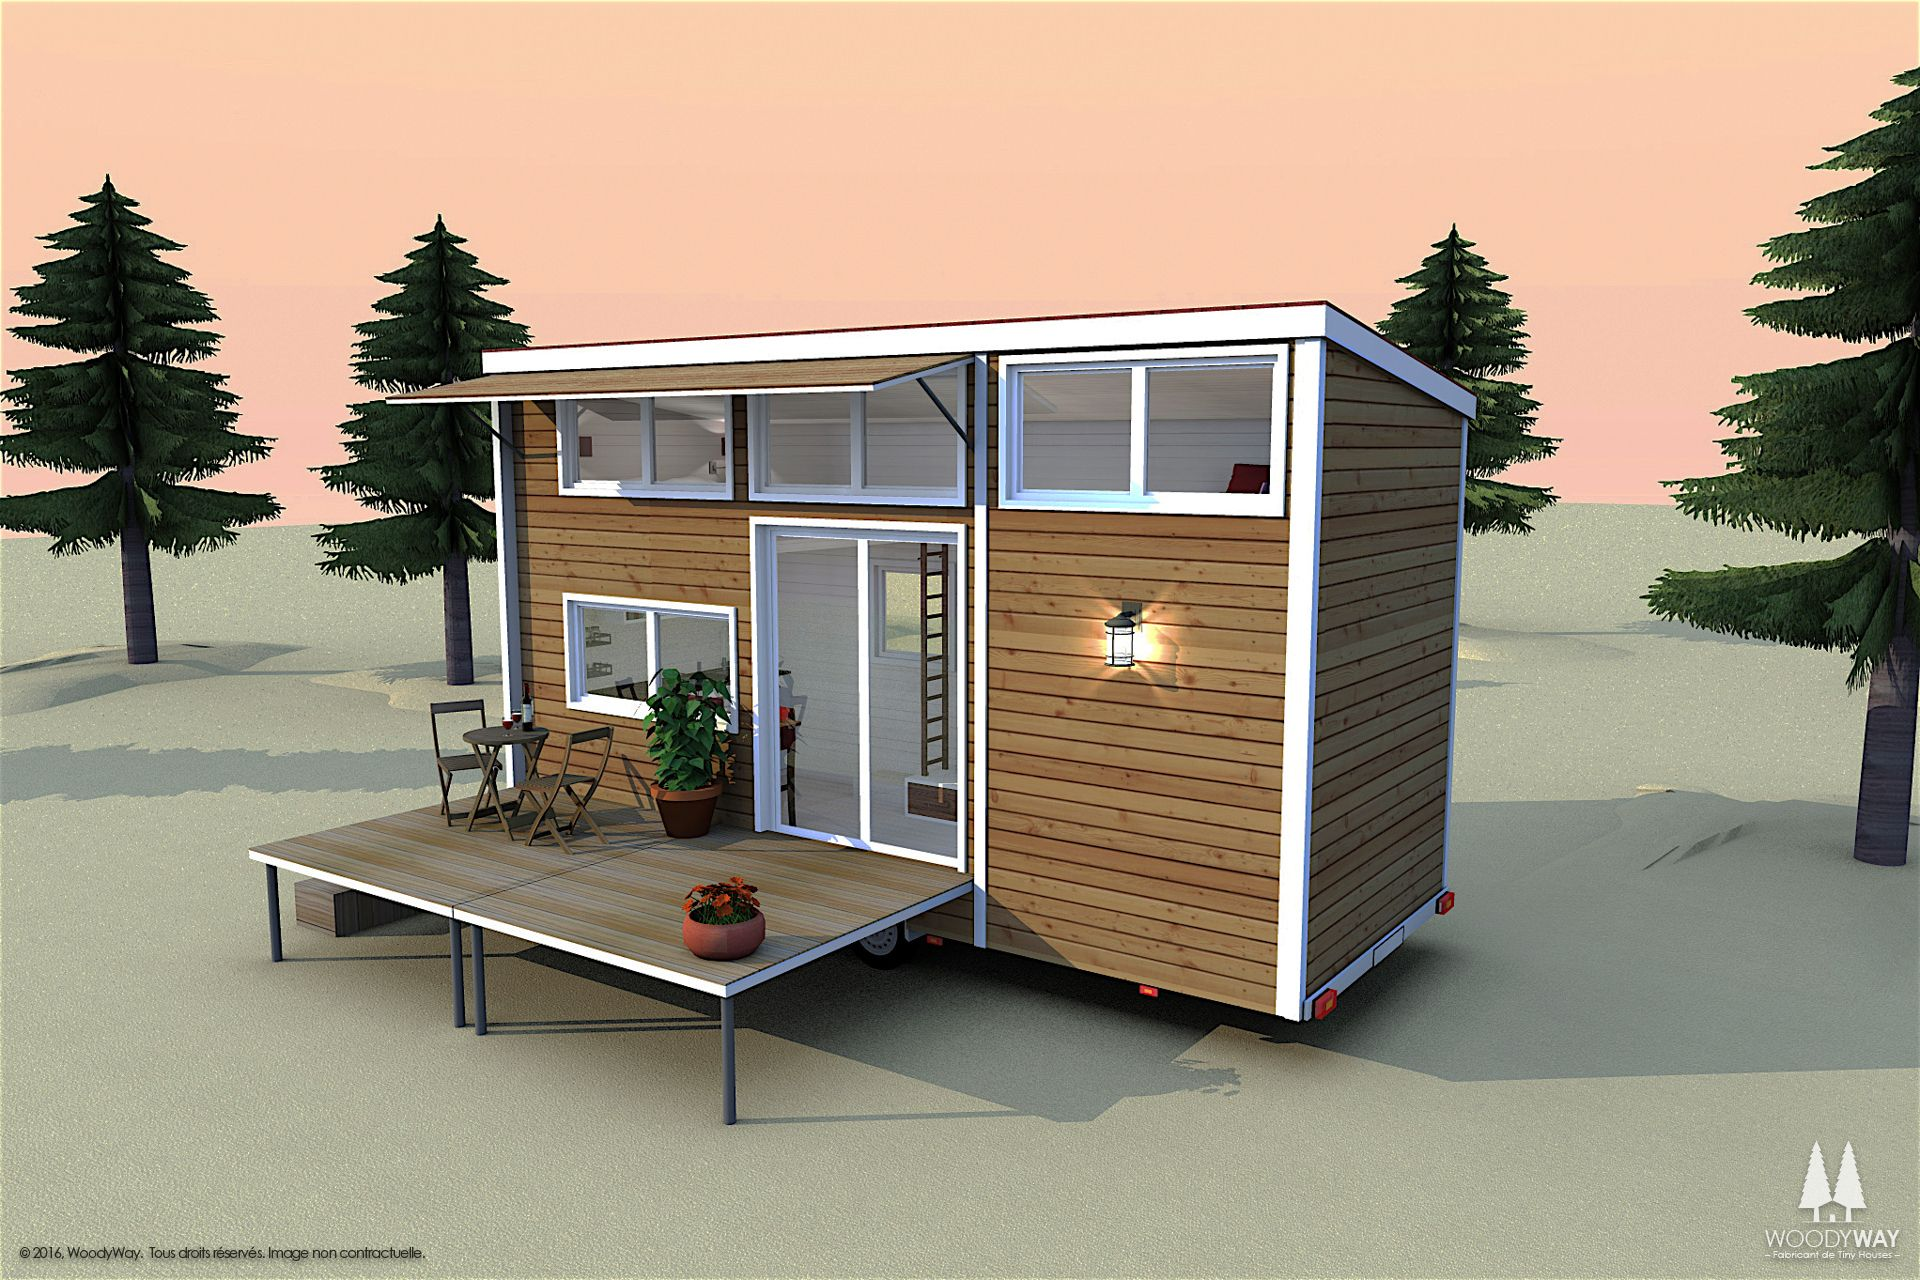 Instant Ecovilla Modular Removable Transportable Self Contained Structures Tiny House For Sale In Miami Florida Tiny House Tiny Houses For Sale Tiny House Listings